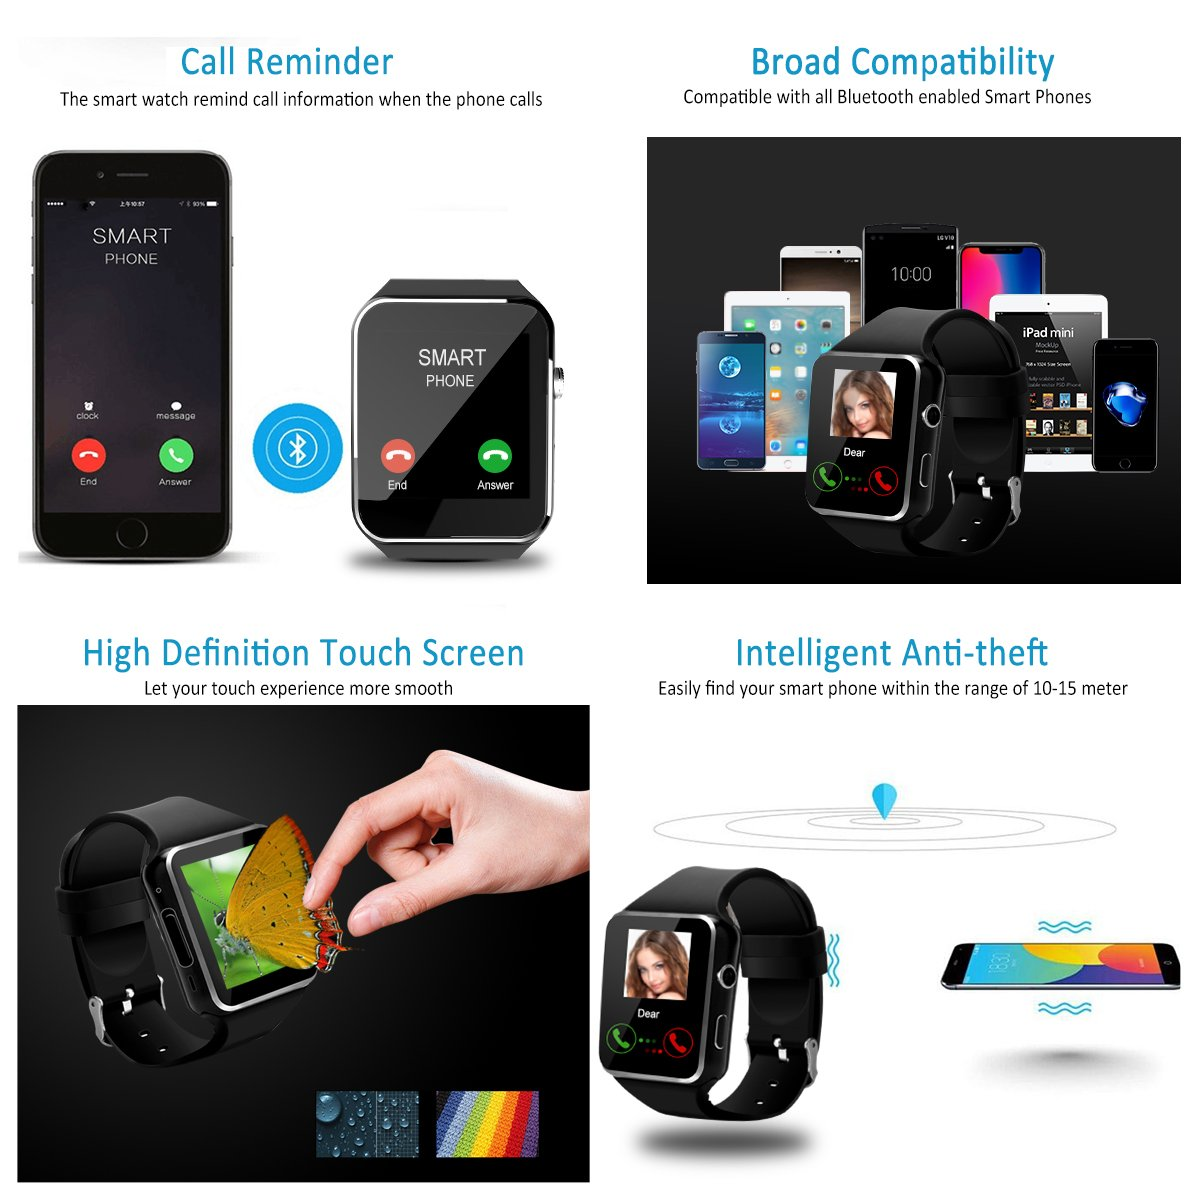 2018 Bluetooth Smart Watch for Andriod phones, iphone Smartwatch with Camera,Waterpfoof Watch Cell Phone ,Smart Wrist Watch Touchscreen for Android Samsung IOS Iphone X 87 6 5 Plus Men Women Youth by Luckymore (Image #4)